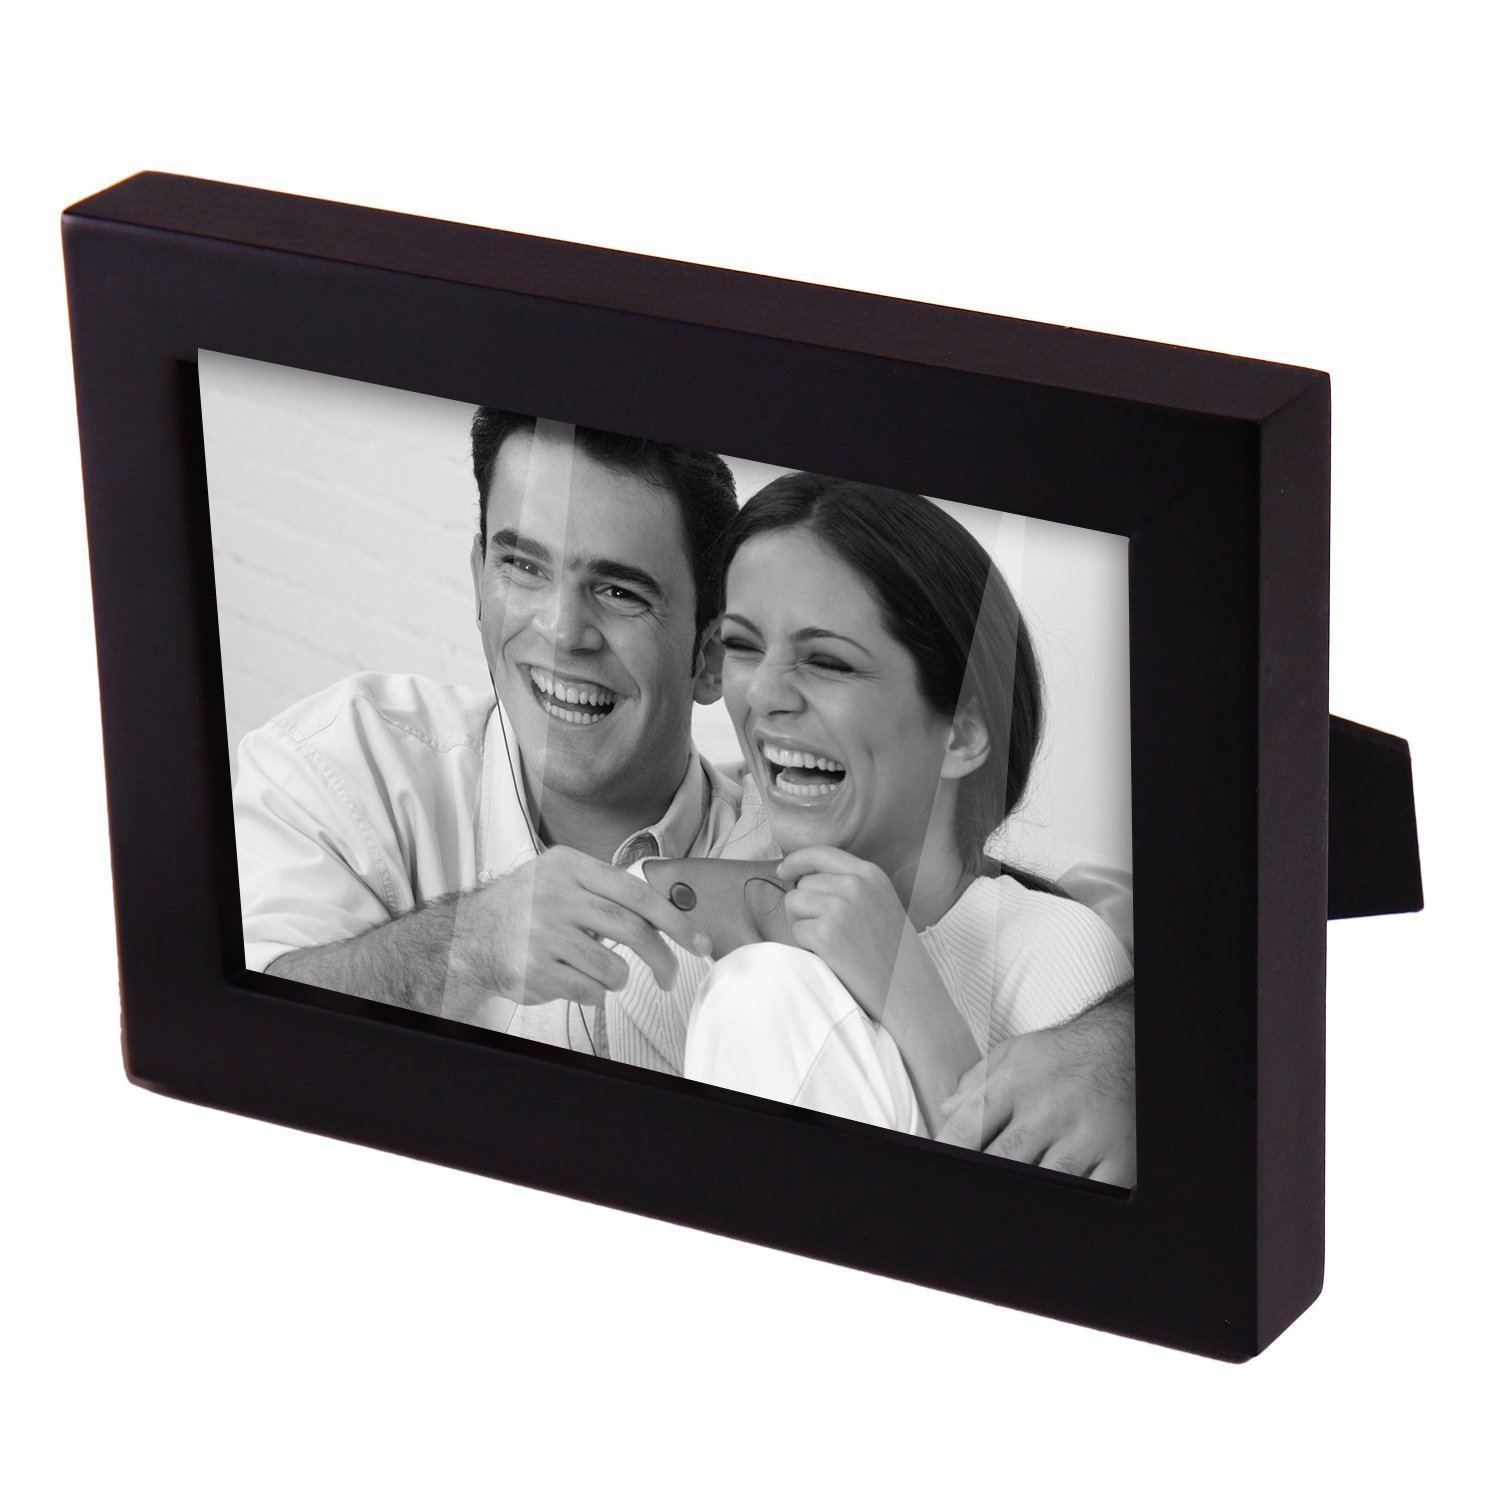 Adeco 4 x 6-inch Decorative Black Wood Photo Frame with O...